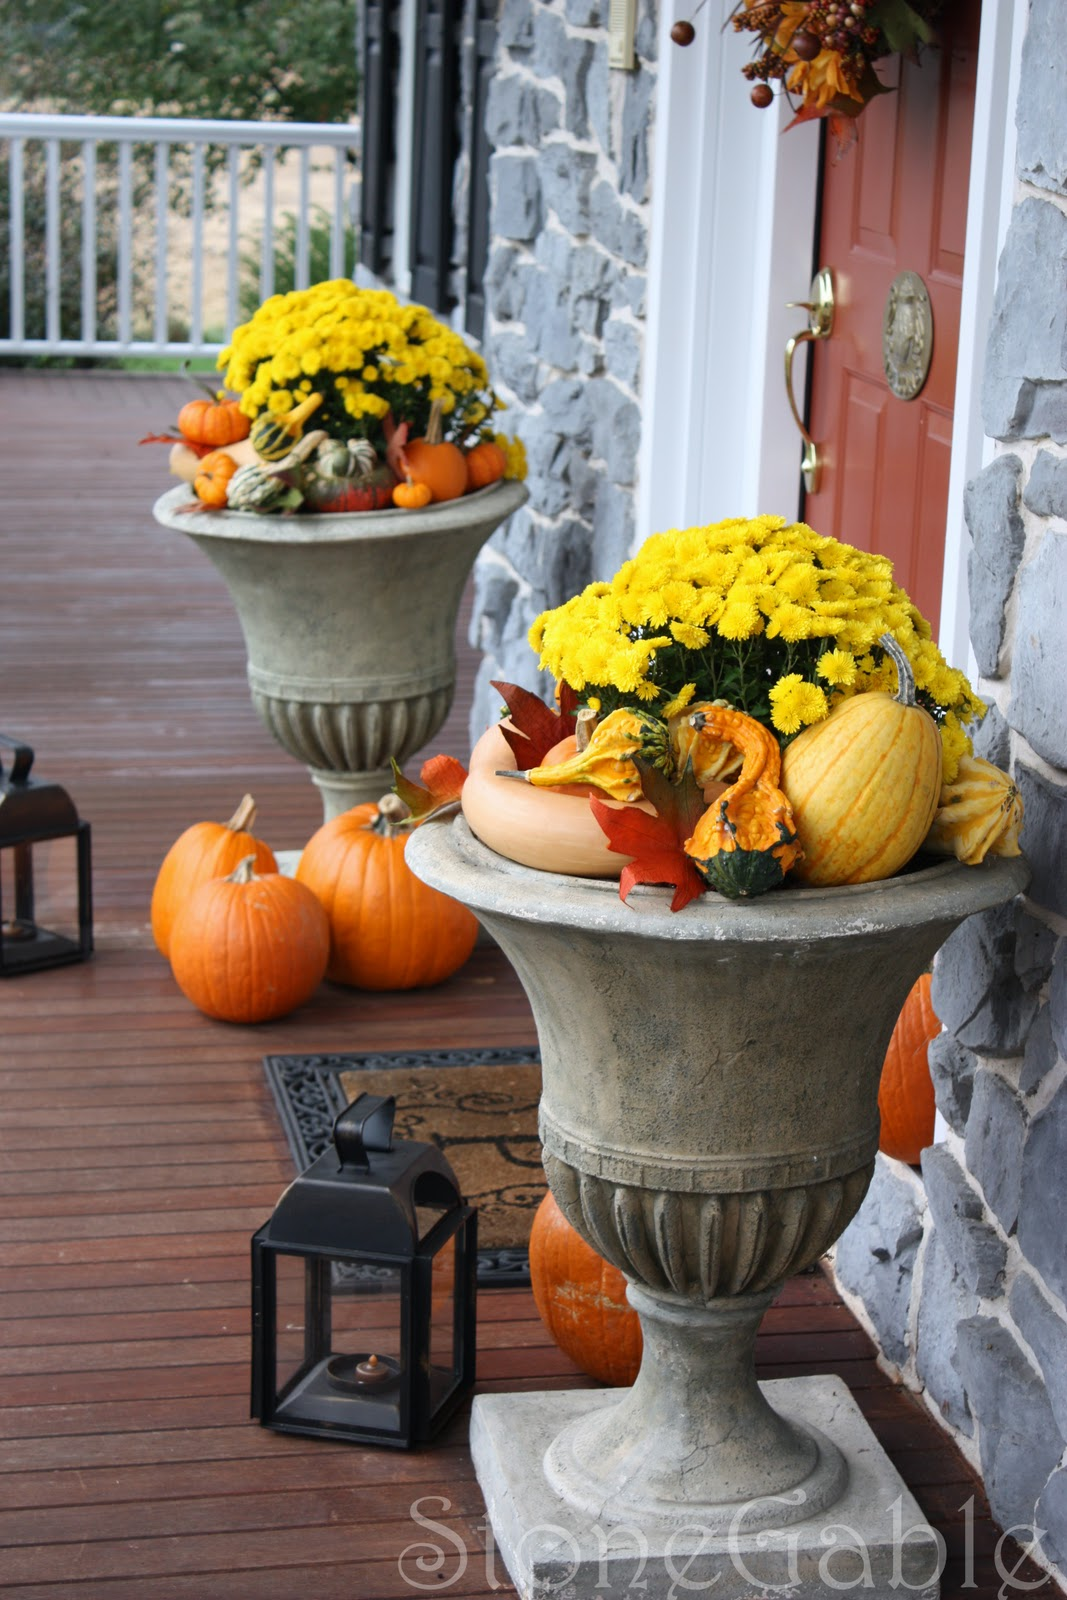 Outdoor fall decor stonegable Fall outdoor decorating with pumpkins